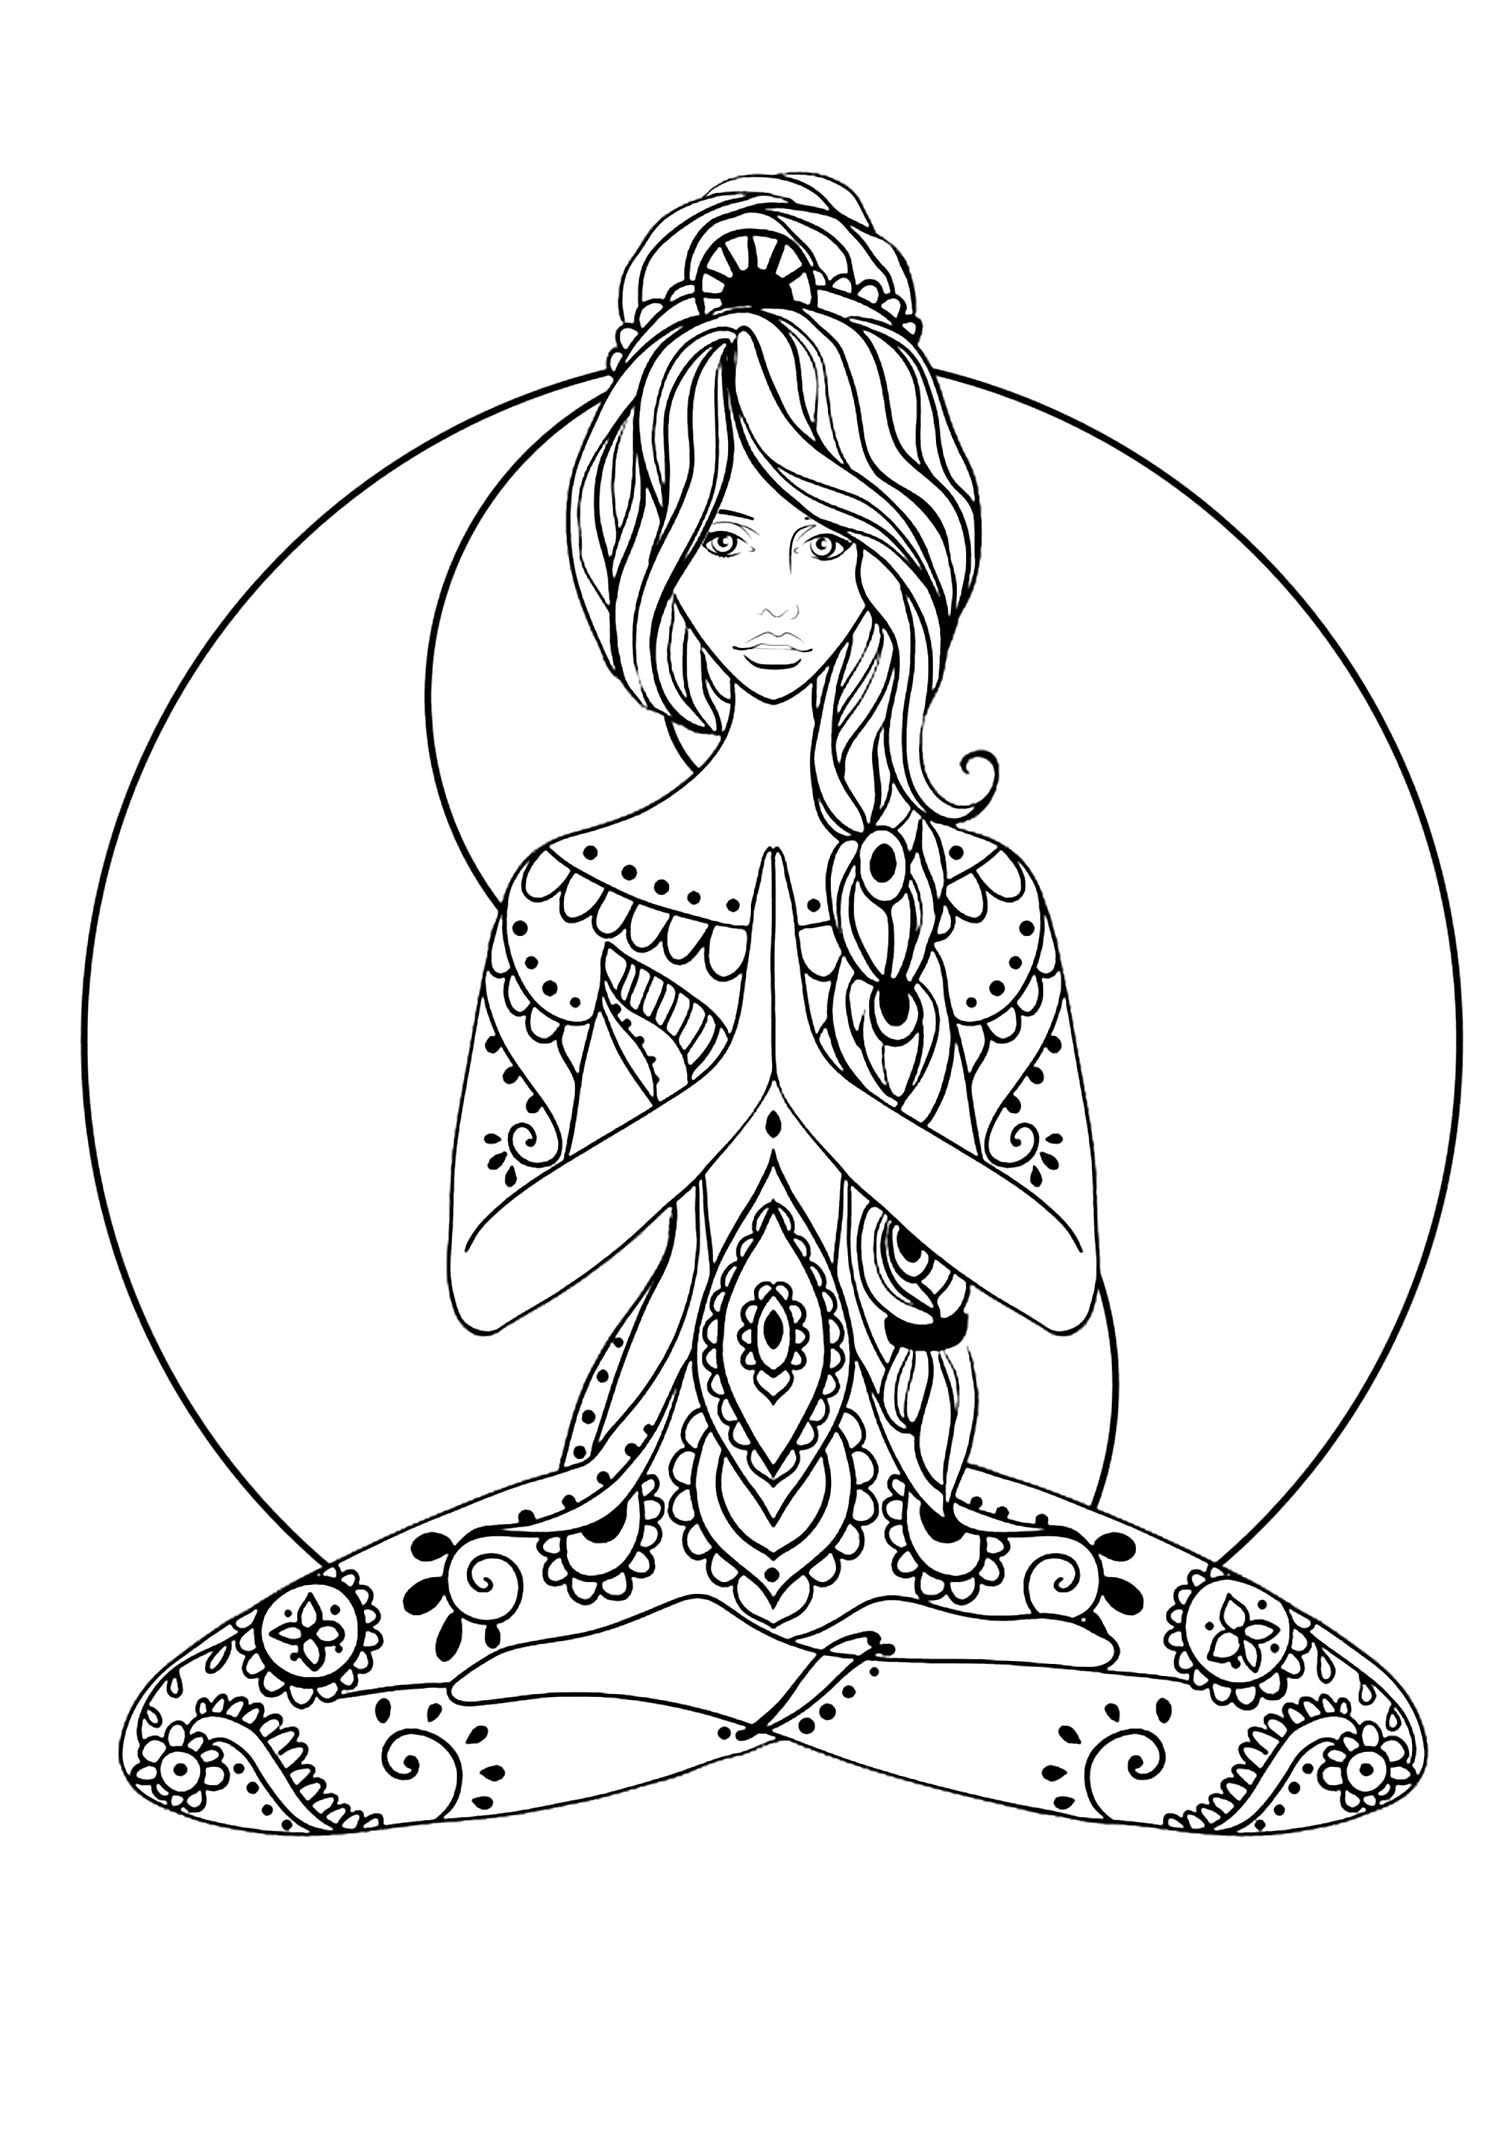 Yoga Yoga Coloring Page Easy From The Gallery Zen Anti Stress Keywords Yin And Yang Yoga J Mandala Coloring Pages Mandala Coloring Coloring Pages